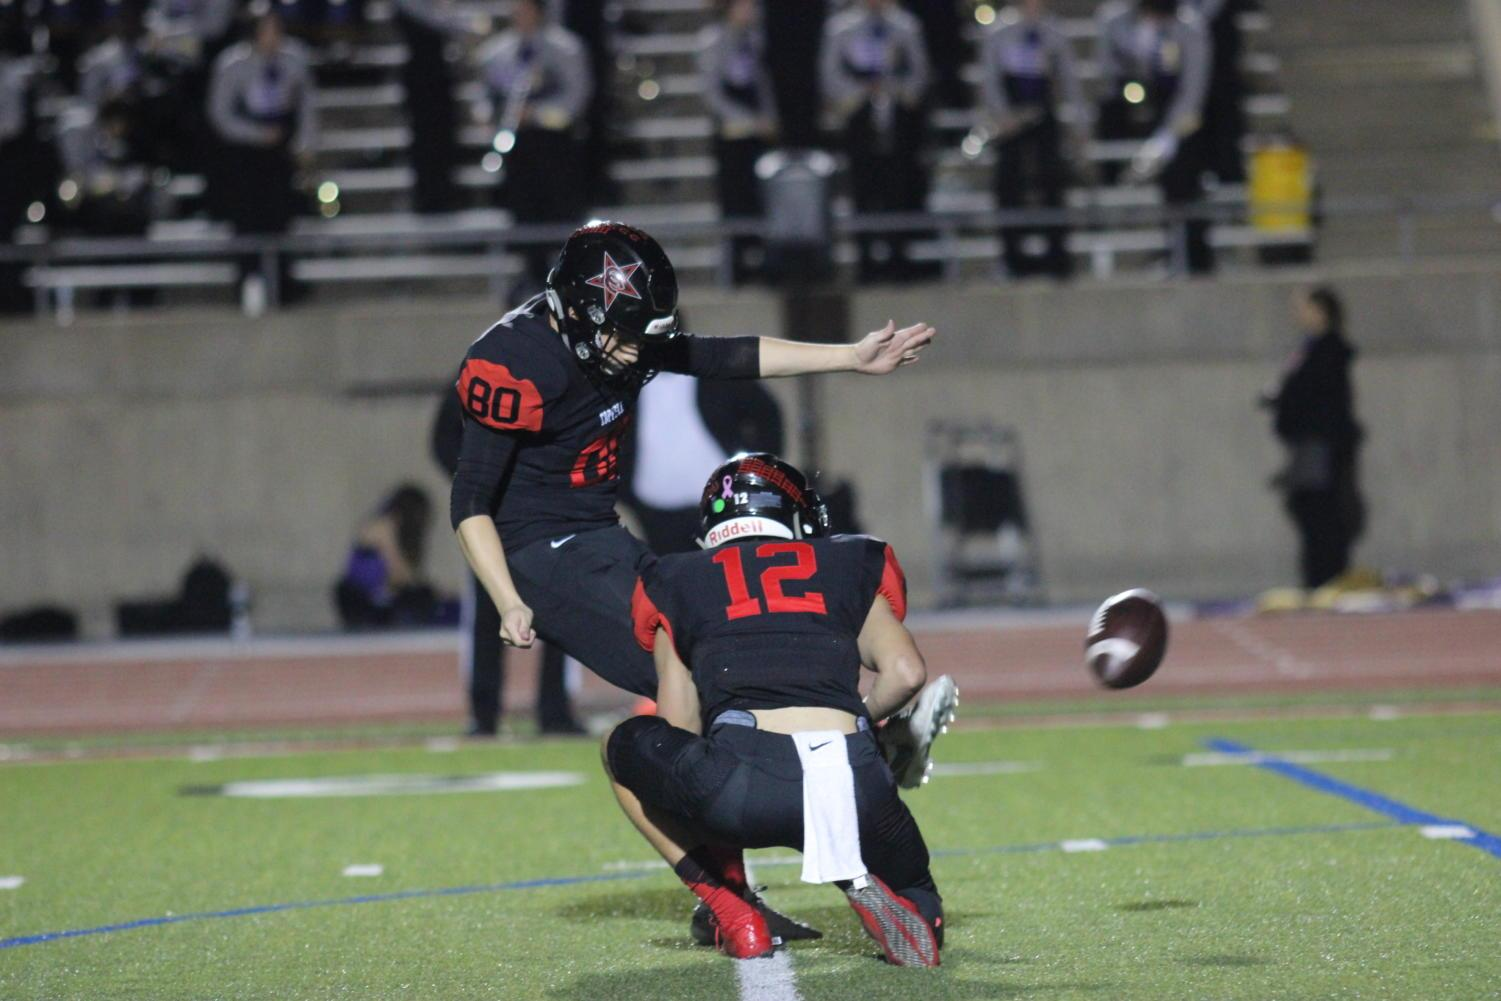 Coppell+Cowboys+senior+kicker+Sebastian+Escalante+kicks+as+senior+wide+receiver+Michael+Quirk+stabilizes+the+ball+during+the+fourth+quarter+on+Nov.+10+at+Buddy+Echols+Field.+The+Coppell+Cowboys+defeated+the+Richardson+Eagles%2C+49-14.+